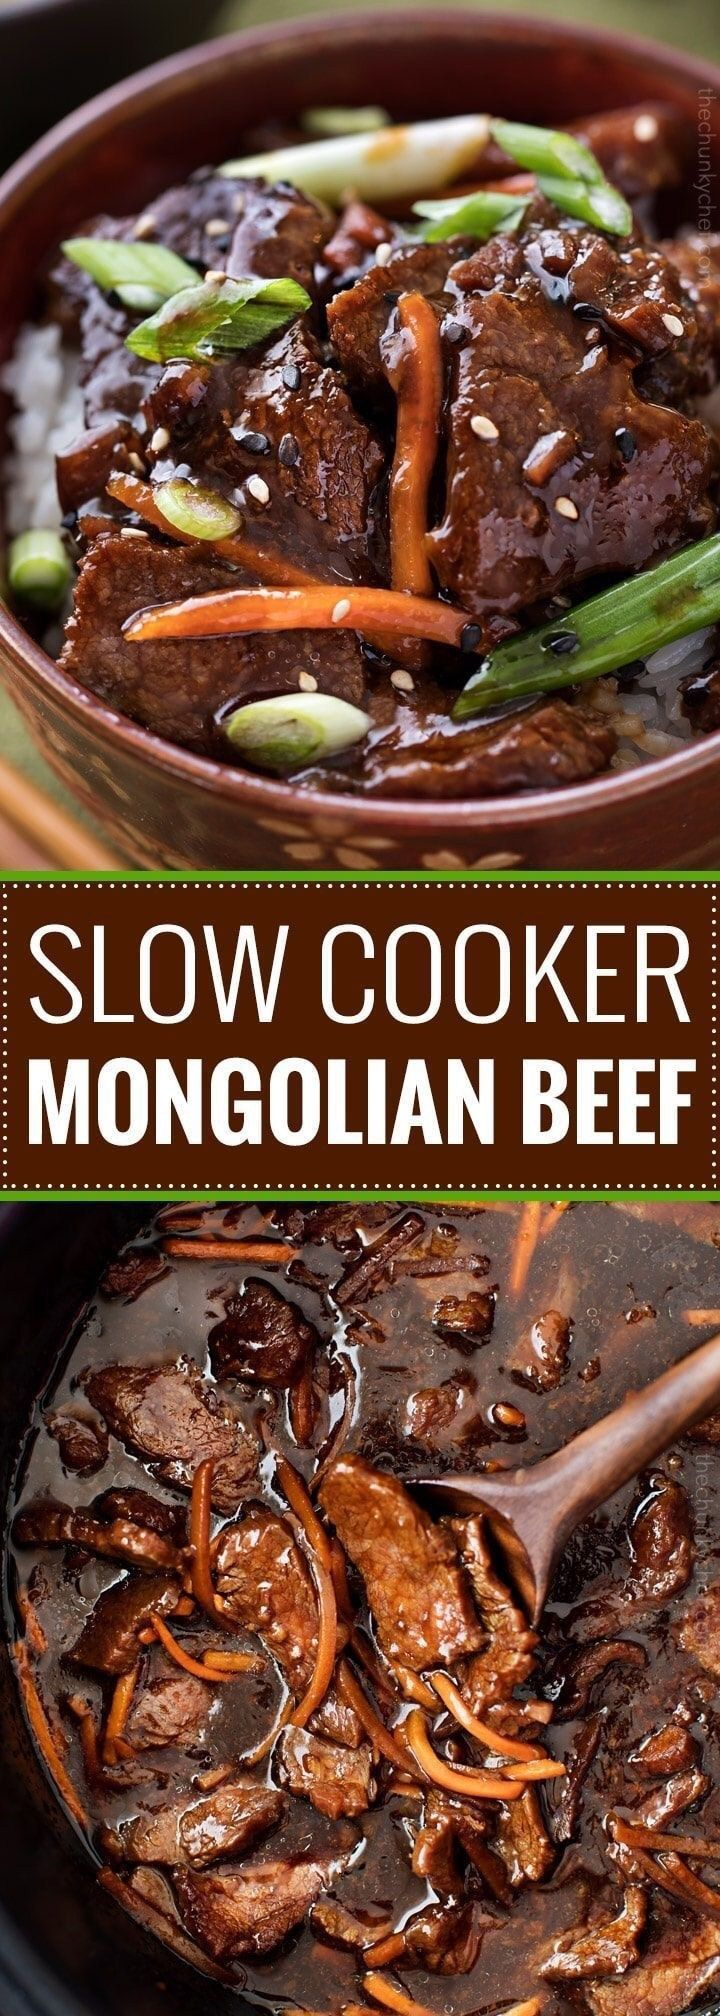 16 Slow Cooker Carnivore Recipes images